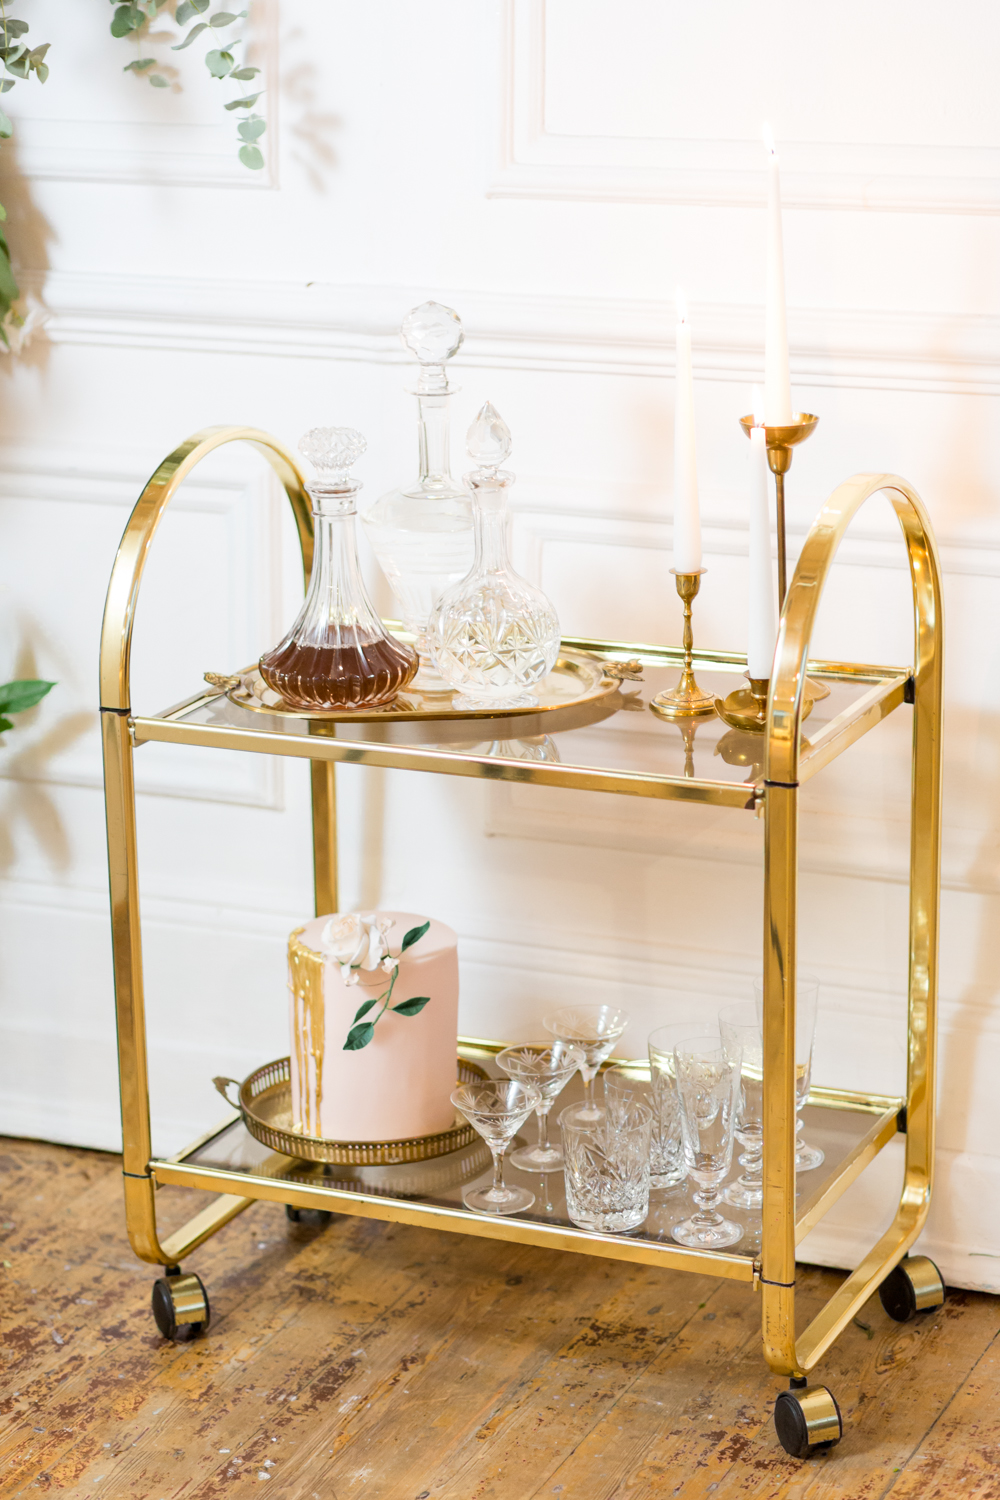 Brass & Glass Trolley: £35